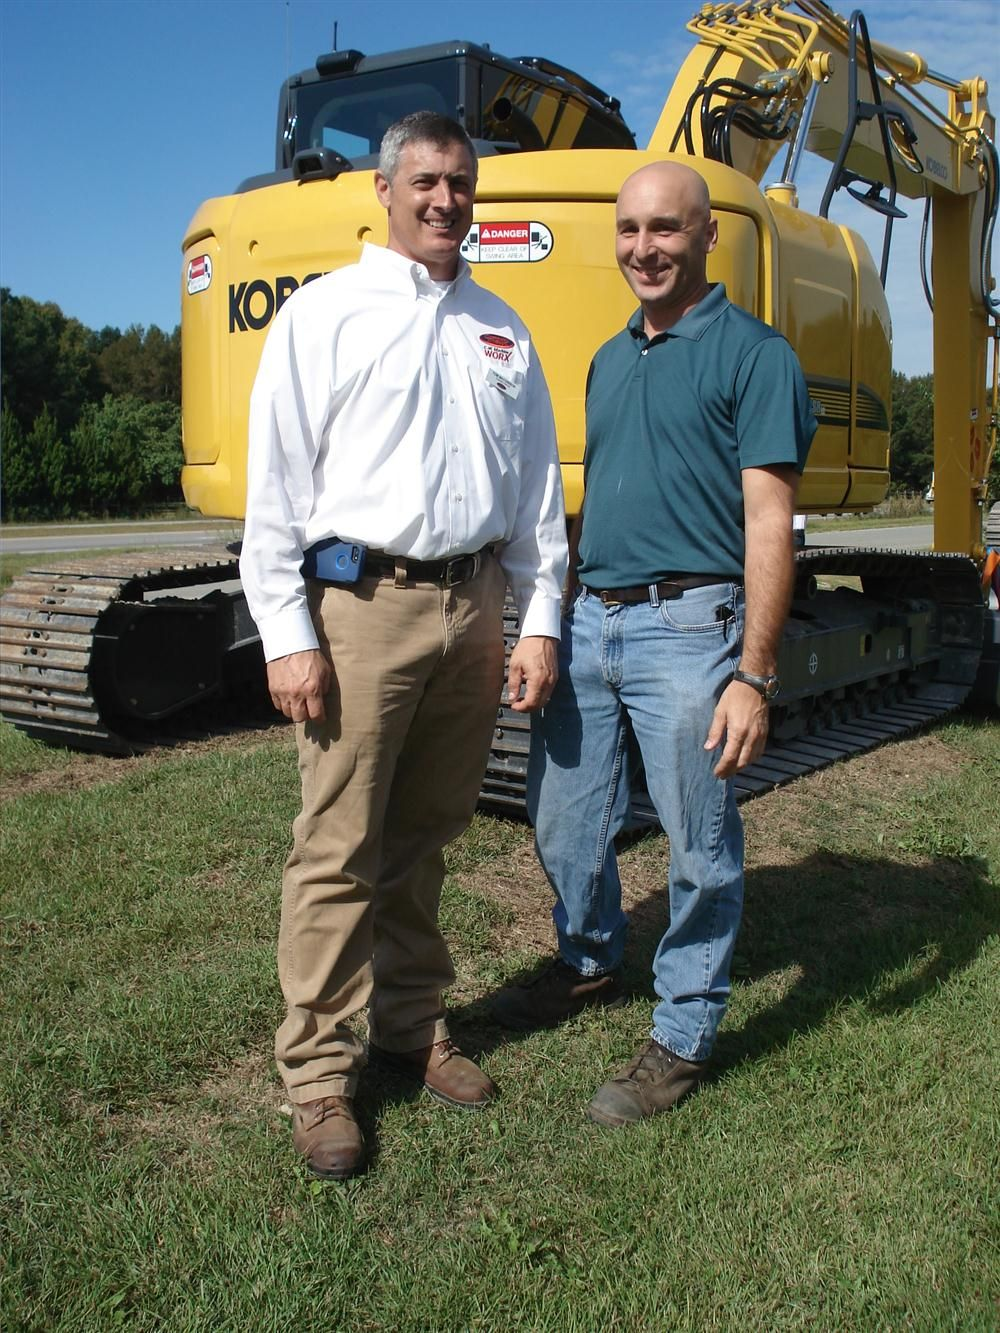 Tom MacGibbon (L) of Company Wrench goes over the Kobelco excavators with Tim Via of Wise Recycling in Clayton, N.C.